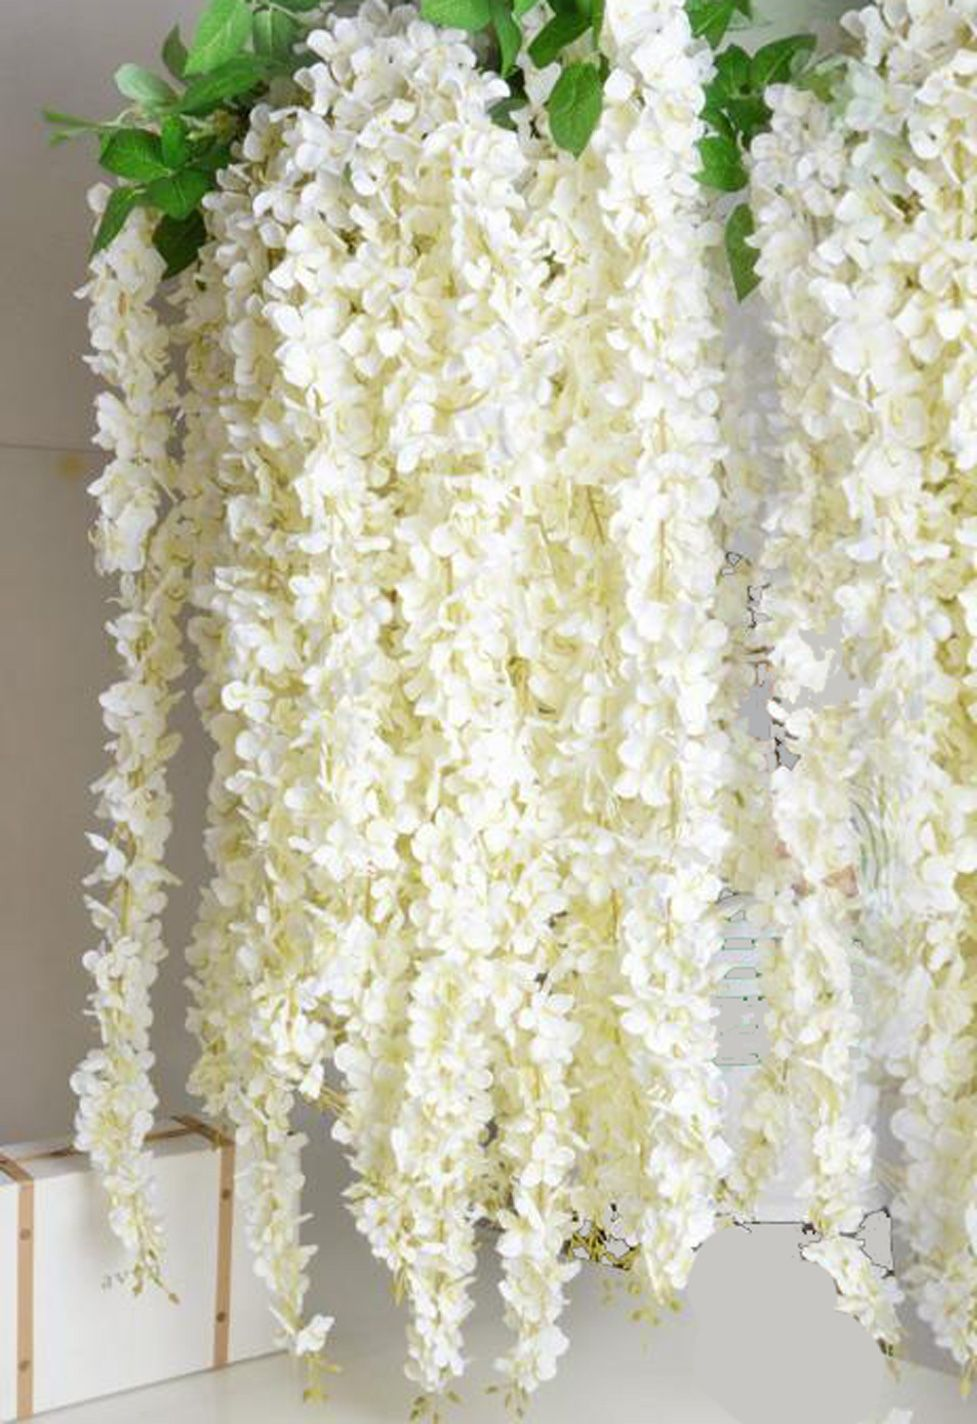 Plumeria frangipani silk flower garland cream 7 long bendable popular for using in hawaiian leis the striking beauty of plumeria flowers has been captured in our new 7 foot long cream colored garland mightylinksfo